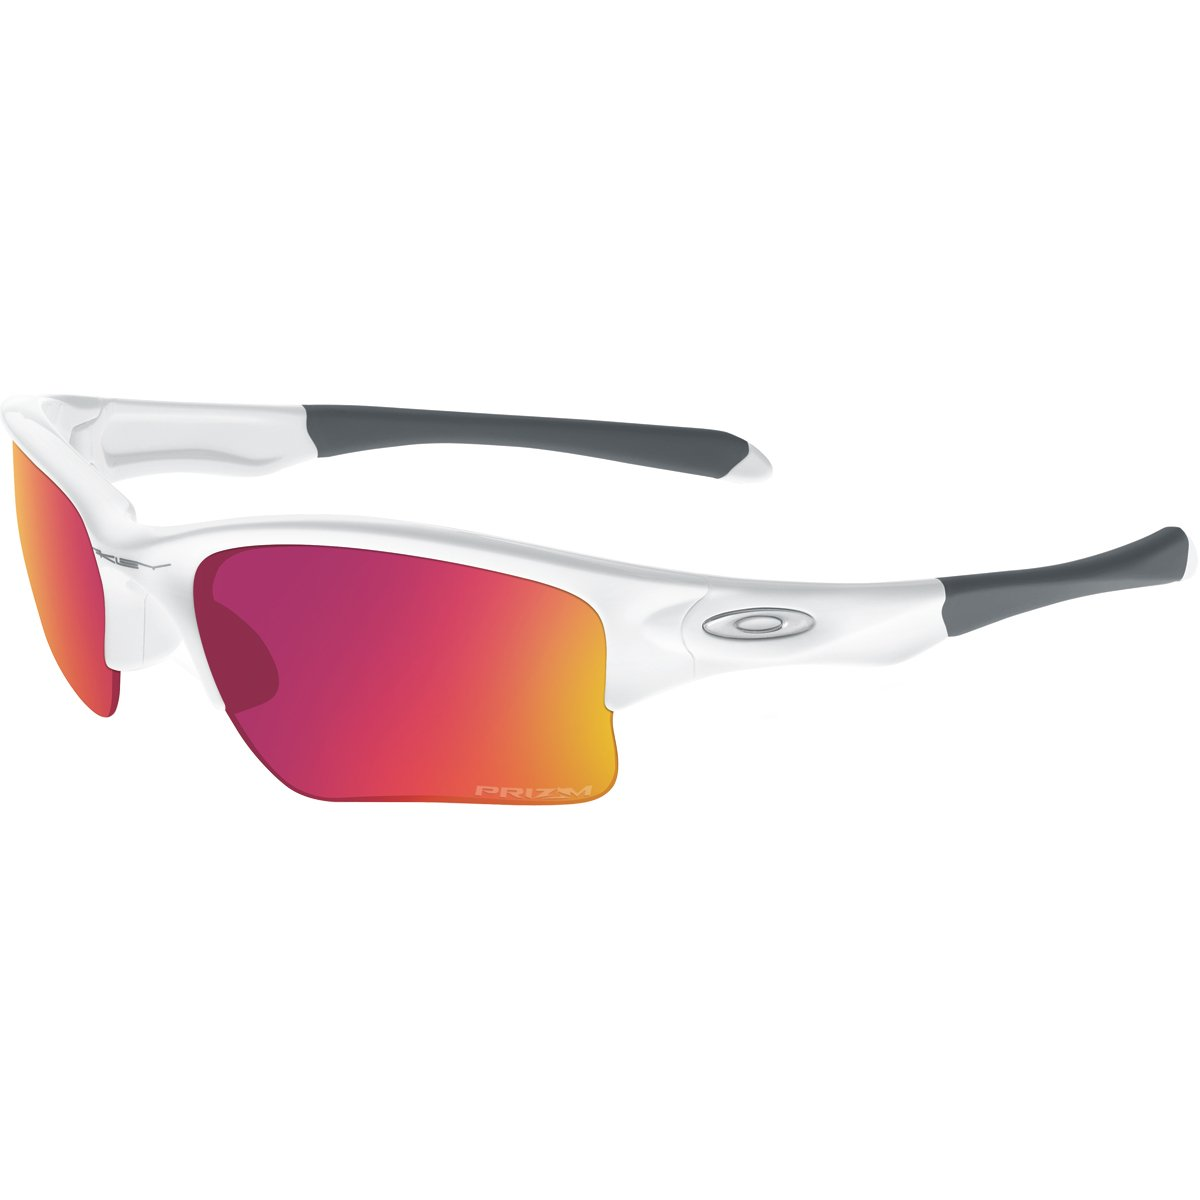 8d8ec87c1e1f7 Amazon.com  Oakley Youth s Quarter Jacket OO9200-09 Rectangular Sunglasses